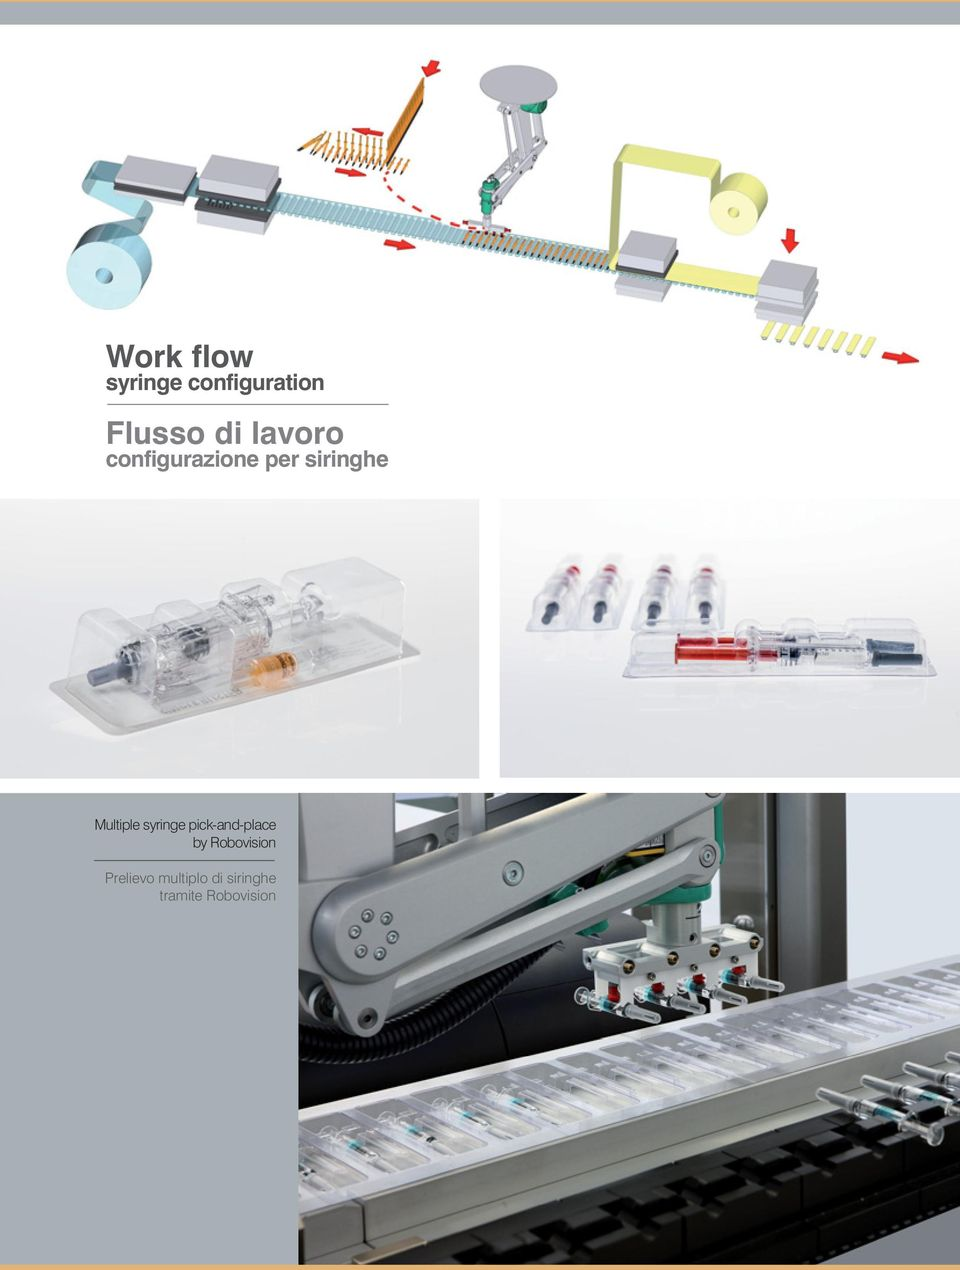 Multiple syringe pick-and-place by